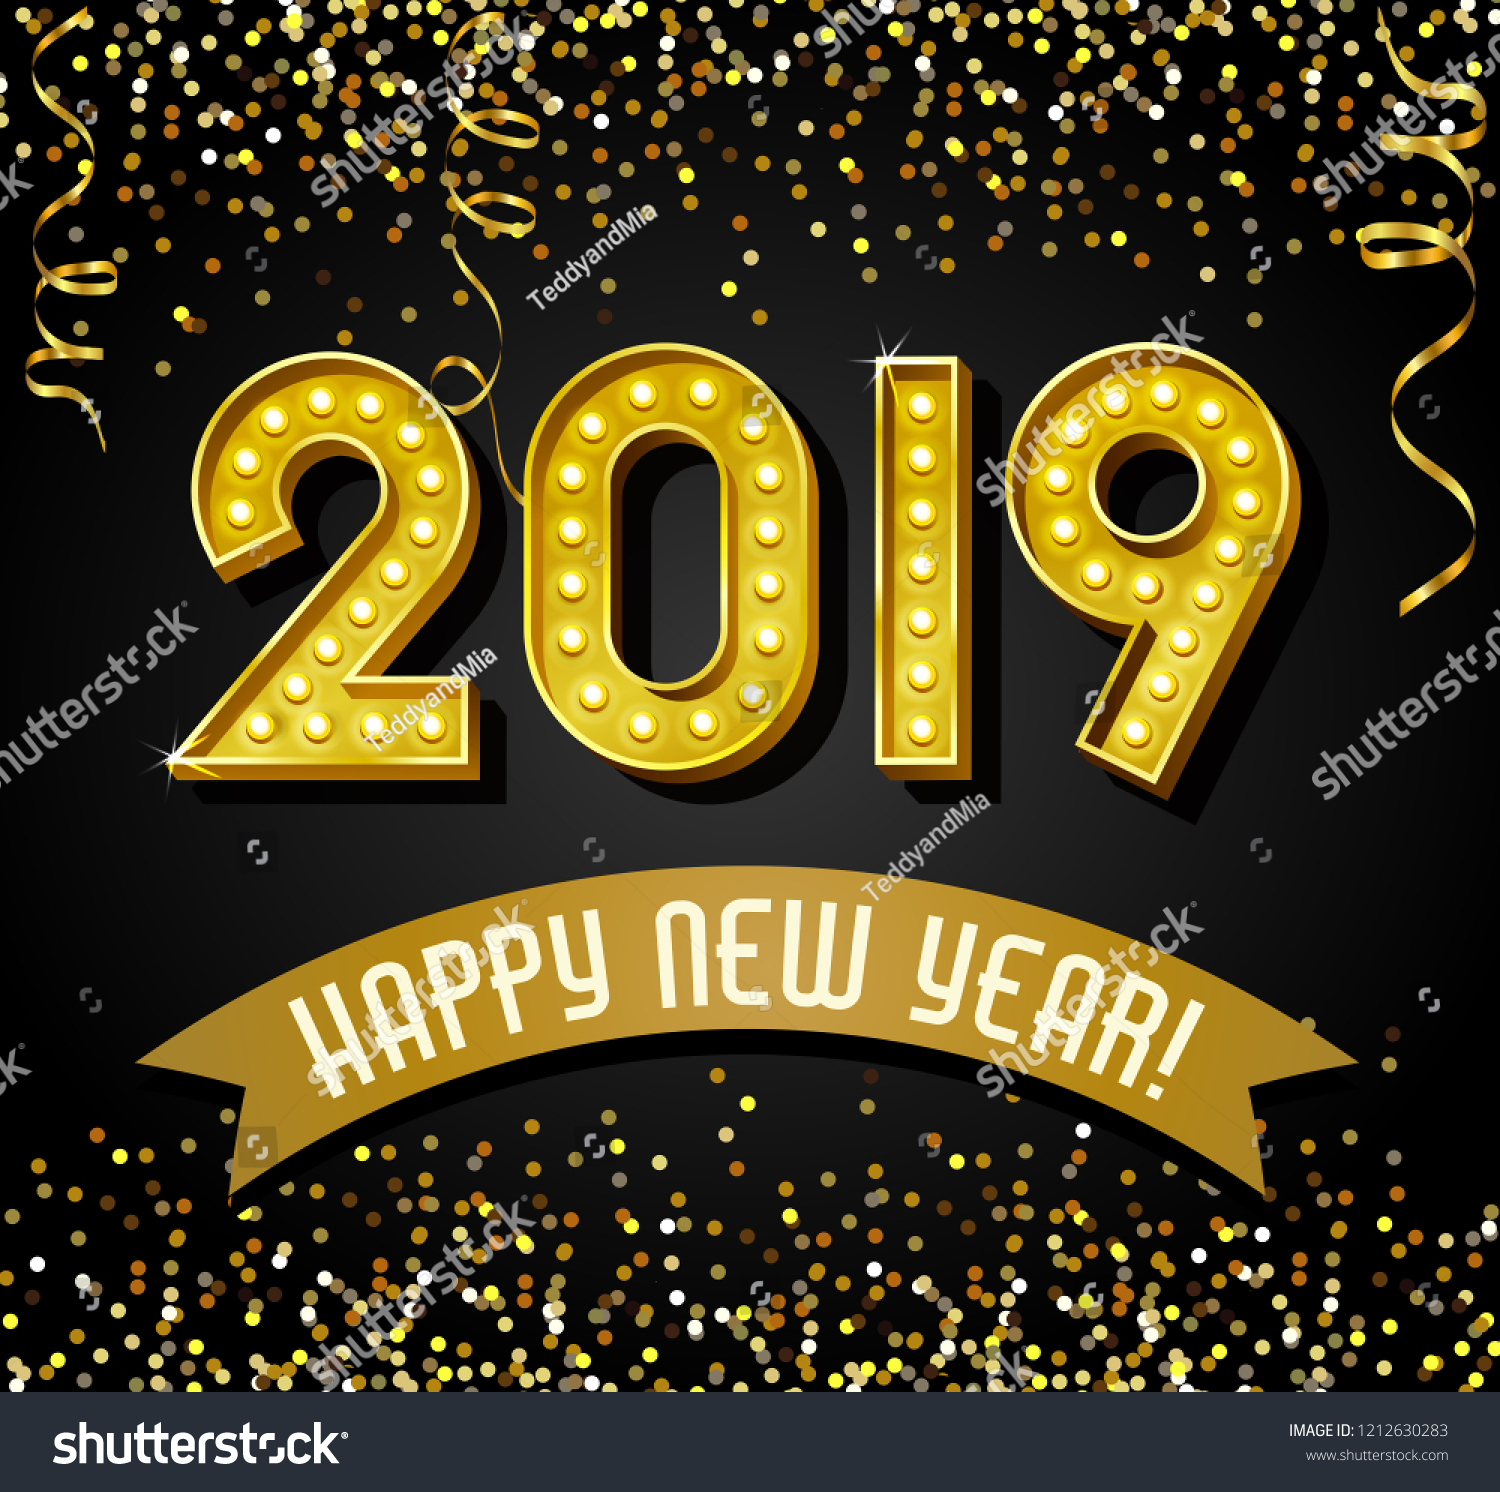 2019 happy new year design with vintage gold light bulb letters glitter confetti and